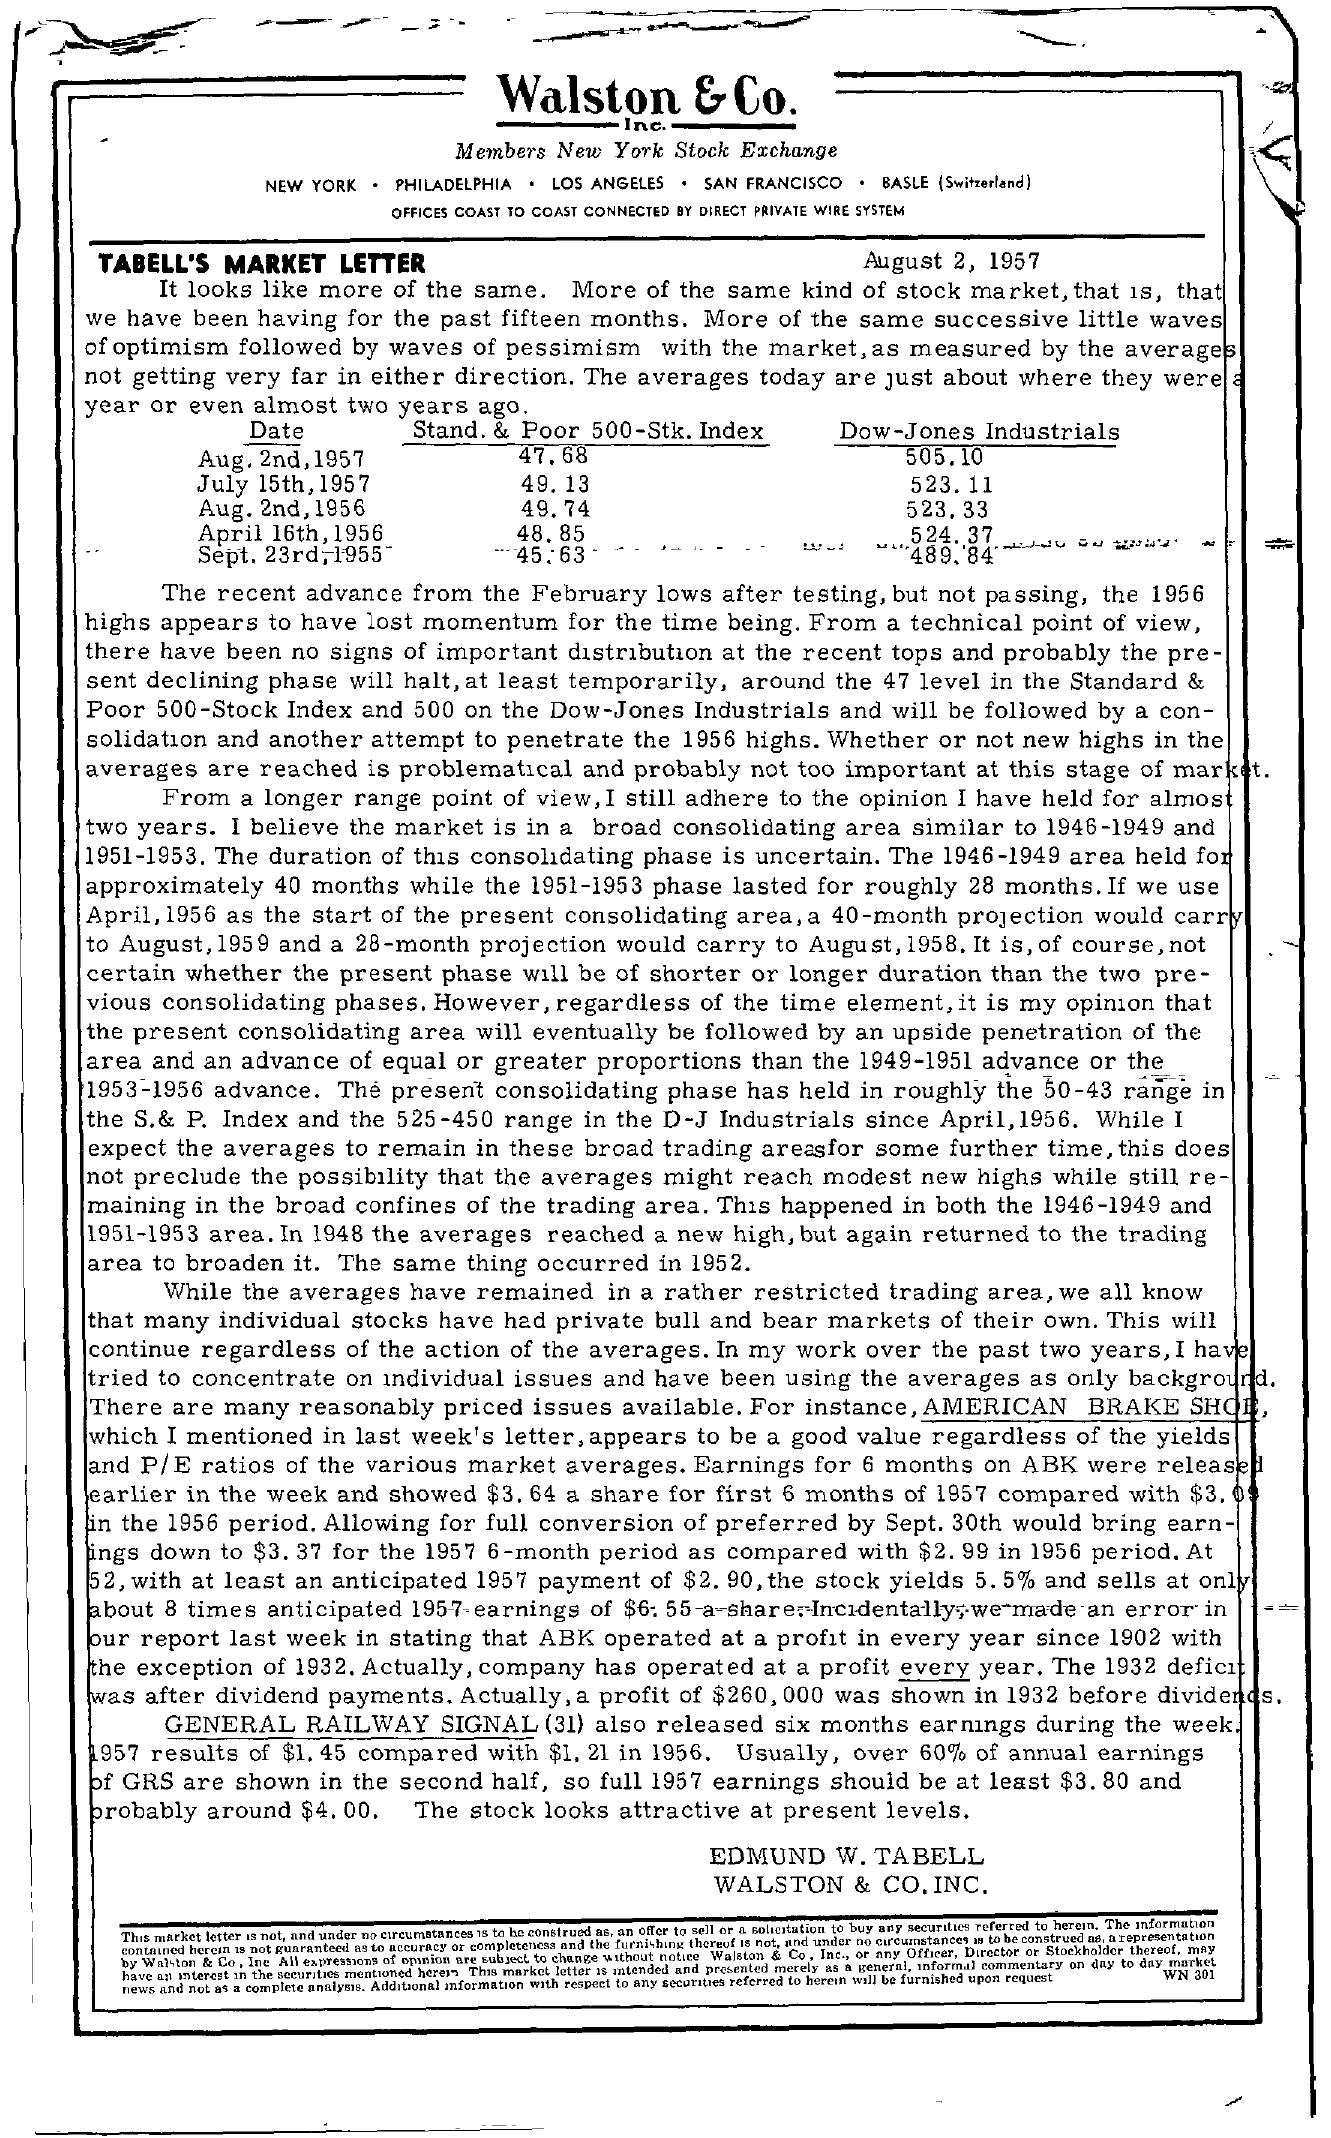 Tabell's Market Letter - August 02, 1957